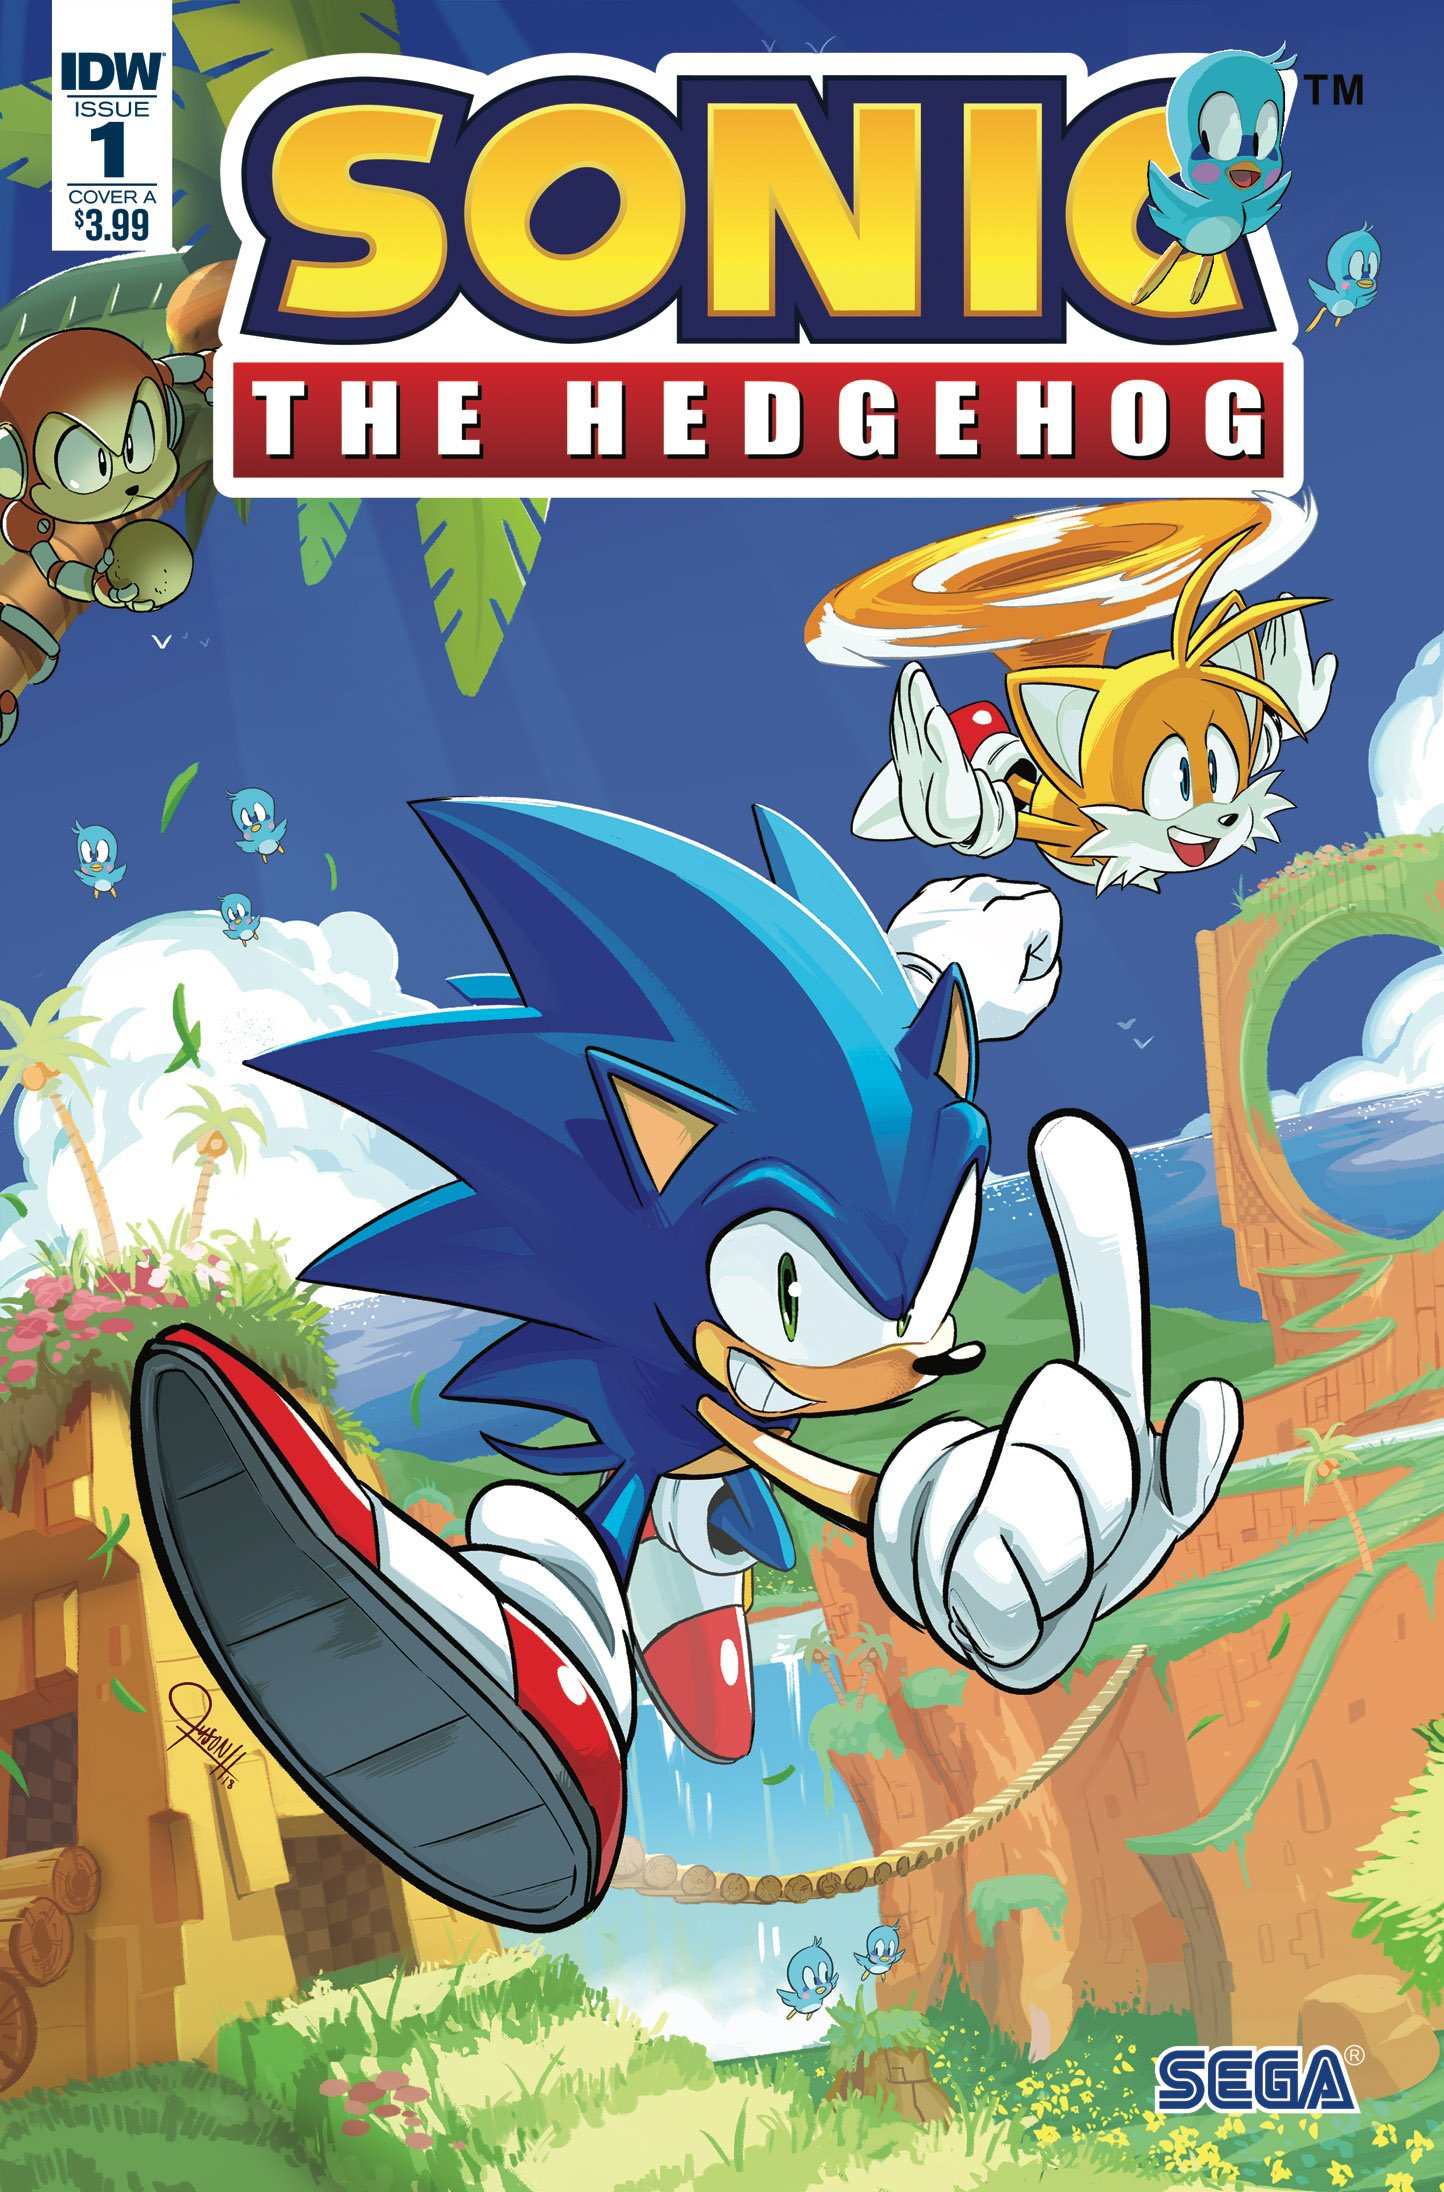 Sonic the Hedgehog 001 (April 2018) (cover a)